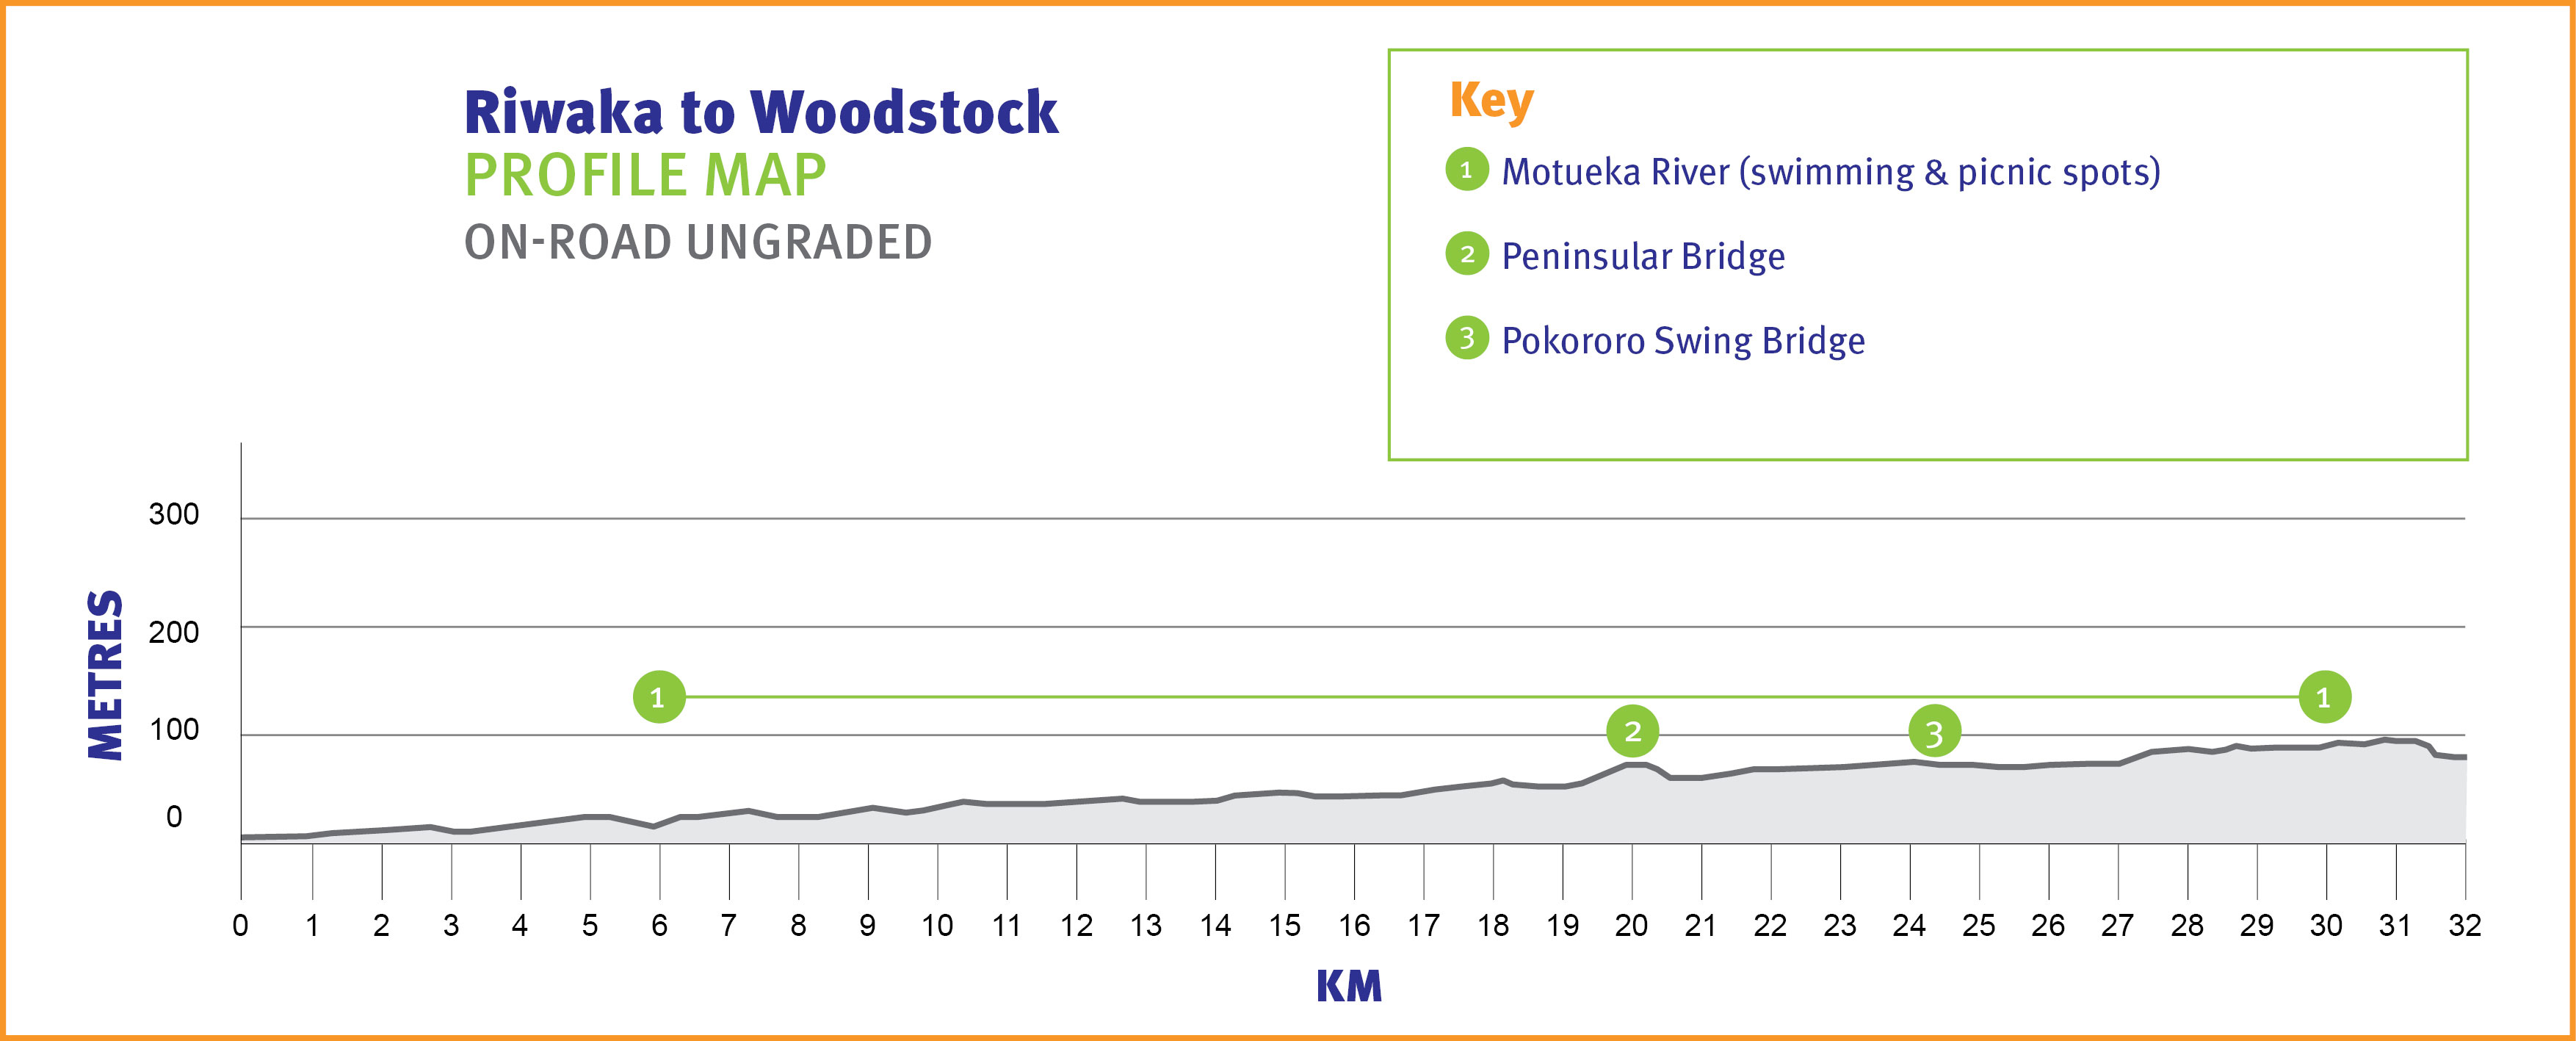 Riwaka to Woodstock Profile Map